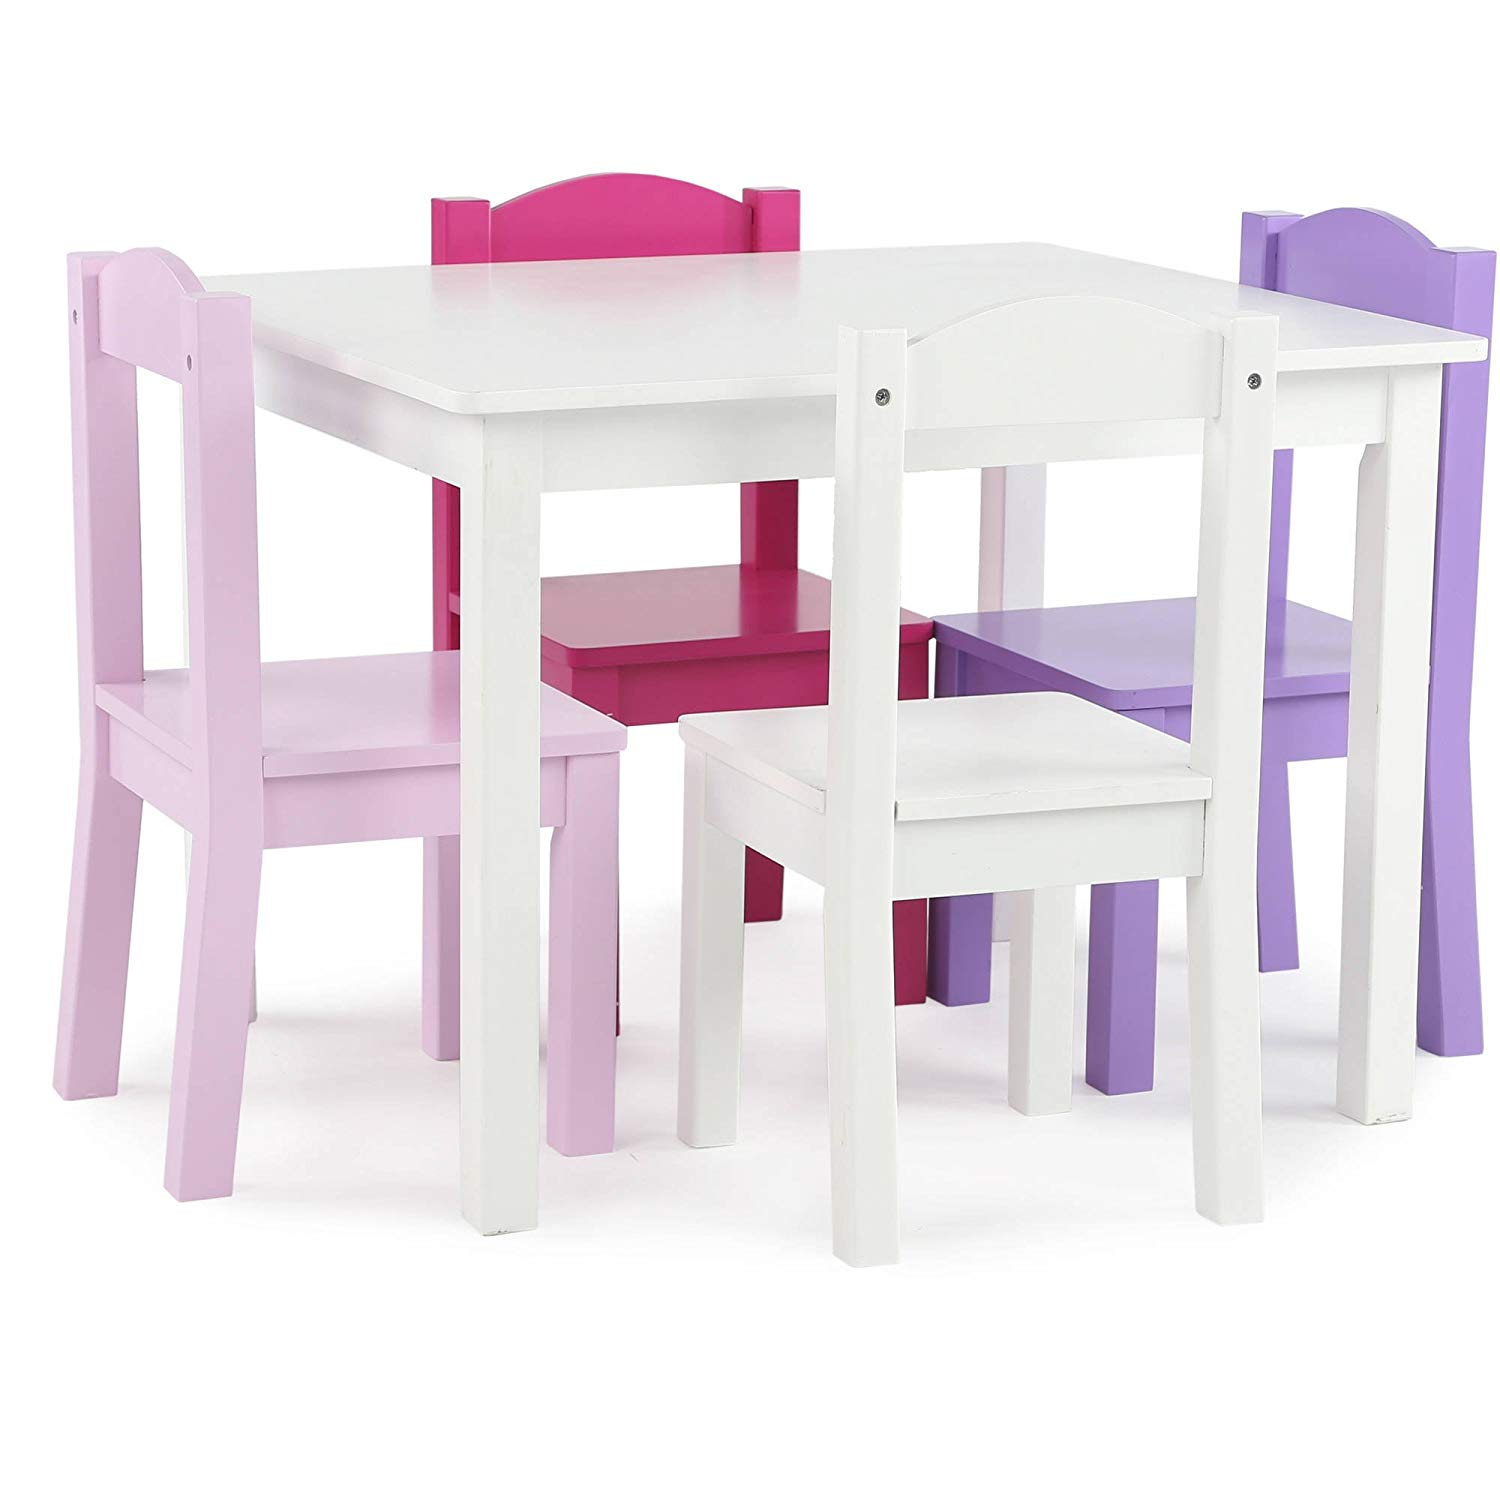 Get quotations · kids wood table and 4 chairs set in pink purple sturdy engineered wood construction